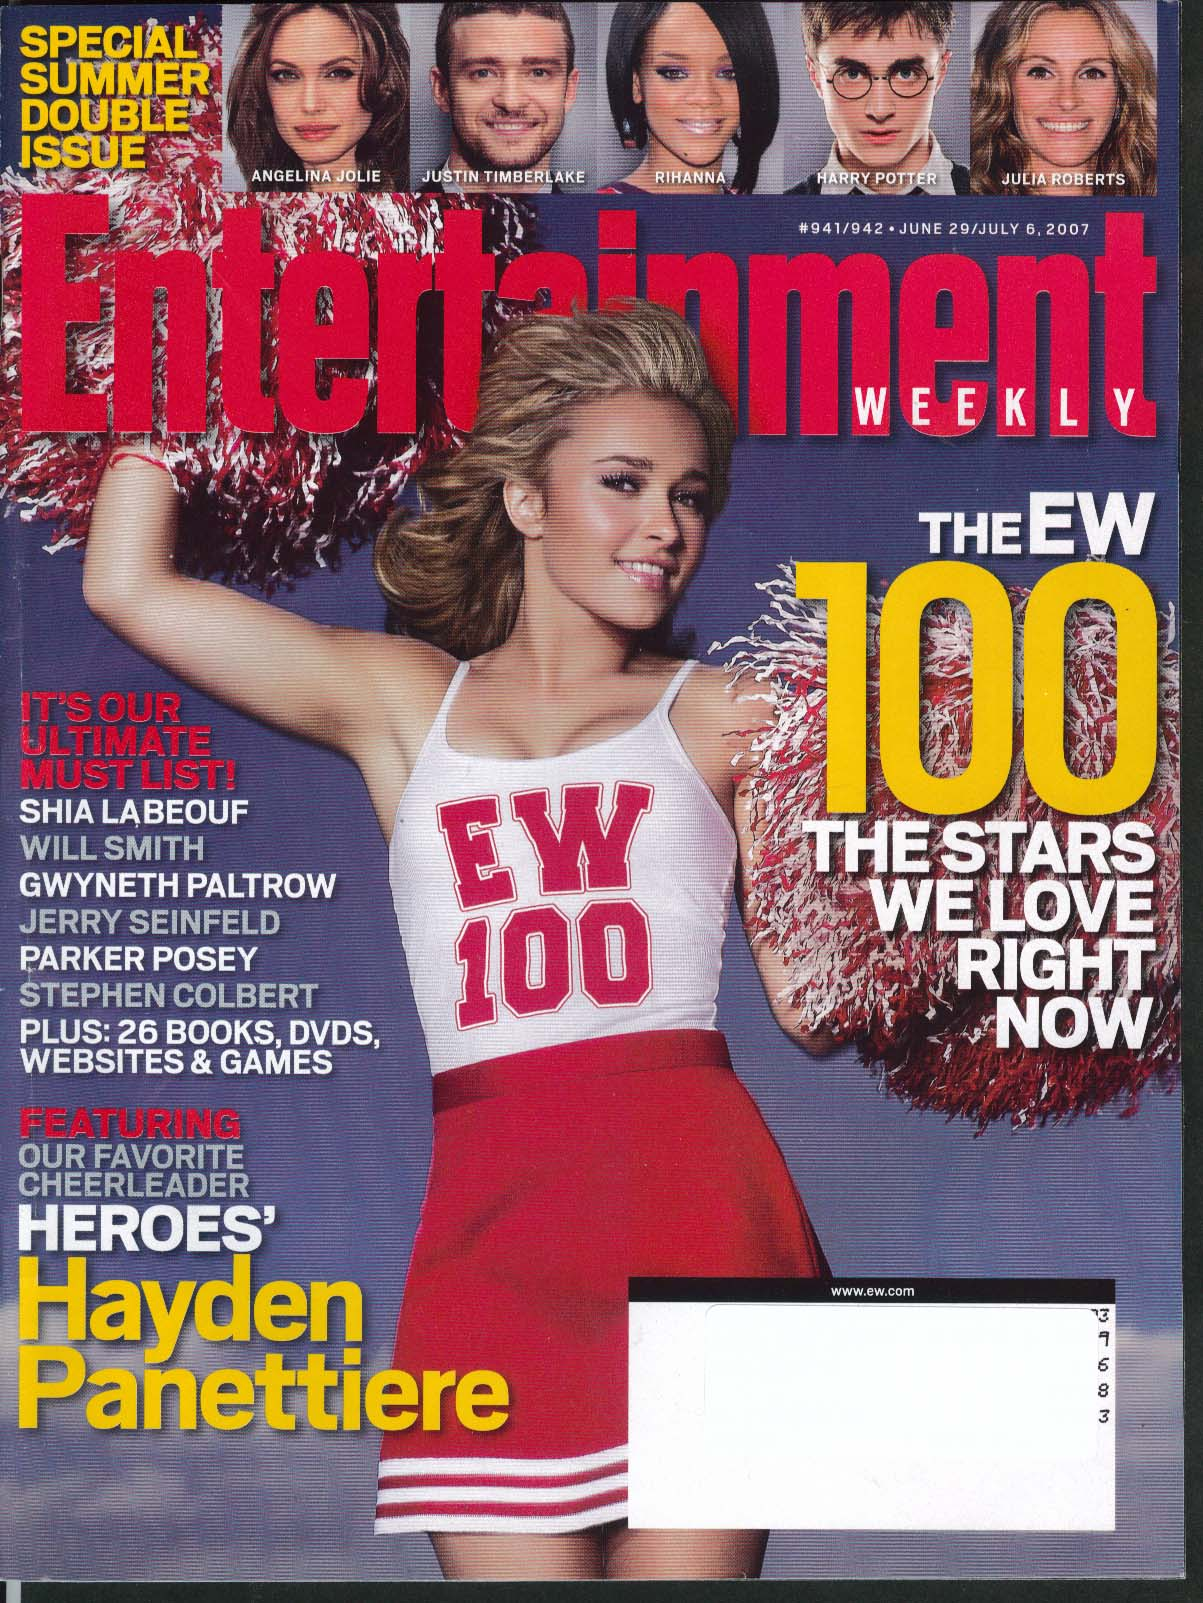 Image for ENTERTAINMENT WEEKLY Hayden Panettiere Angelina Jolie Justin Timberlake 7/6 2007